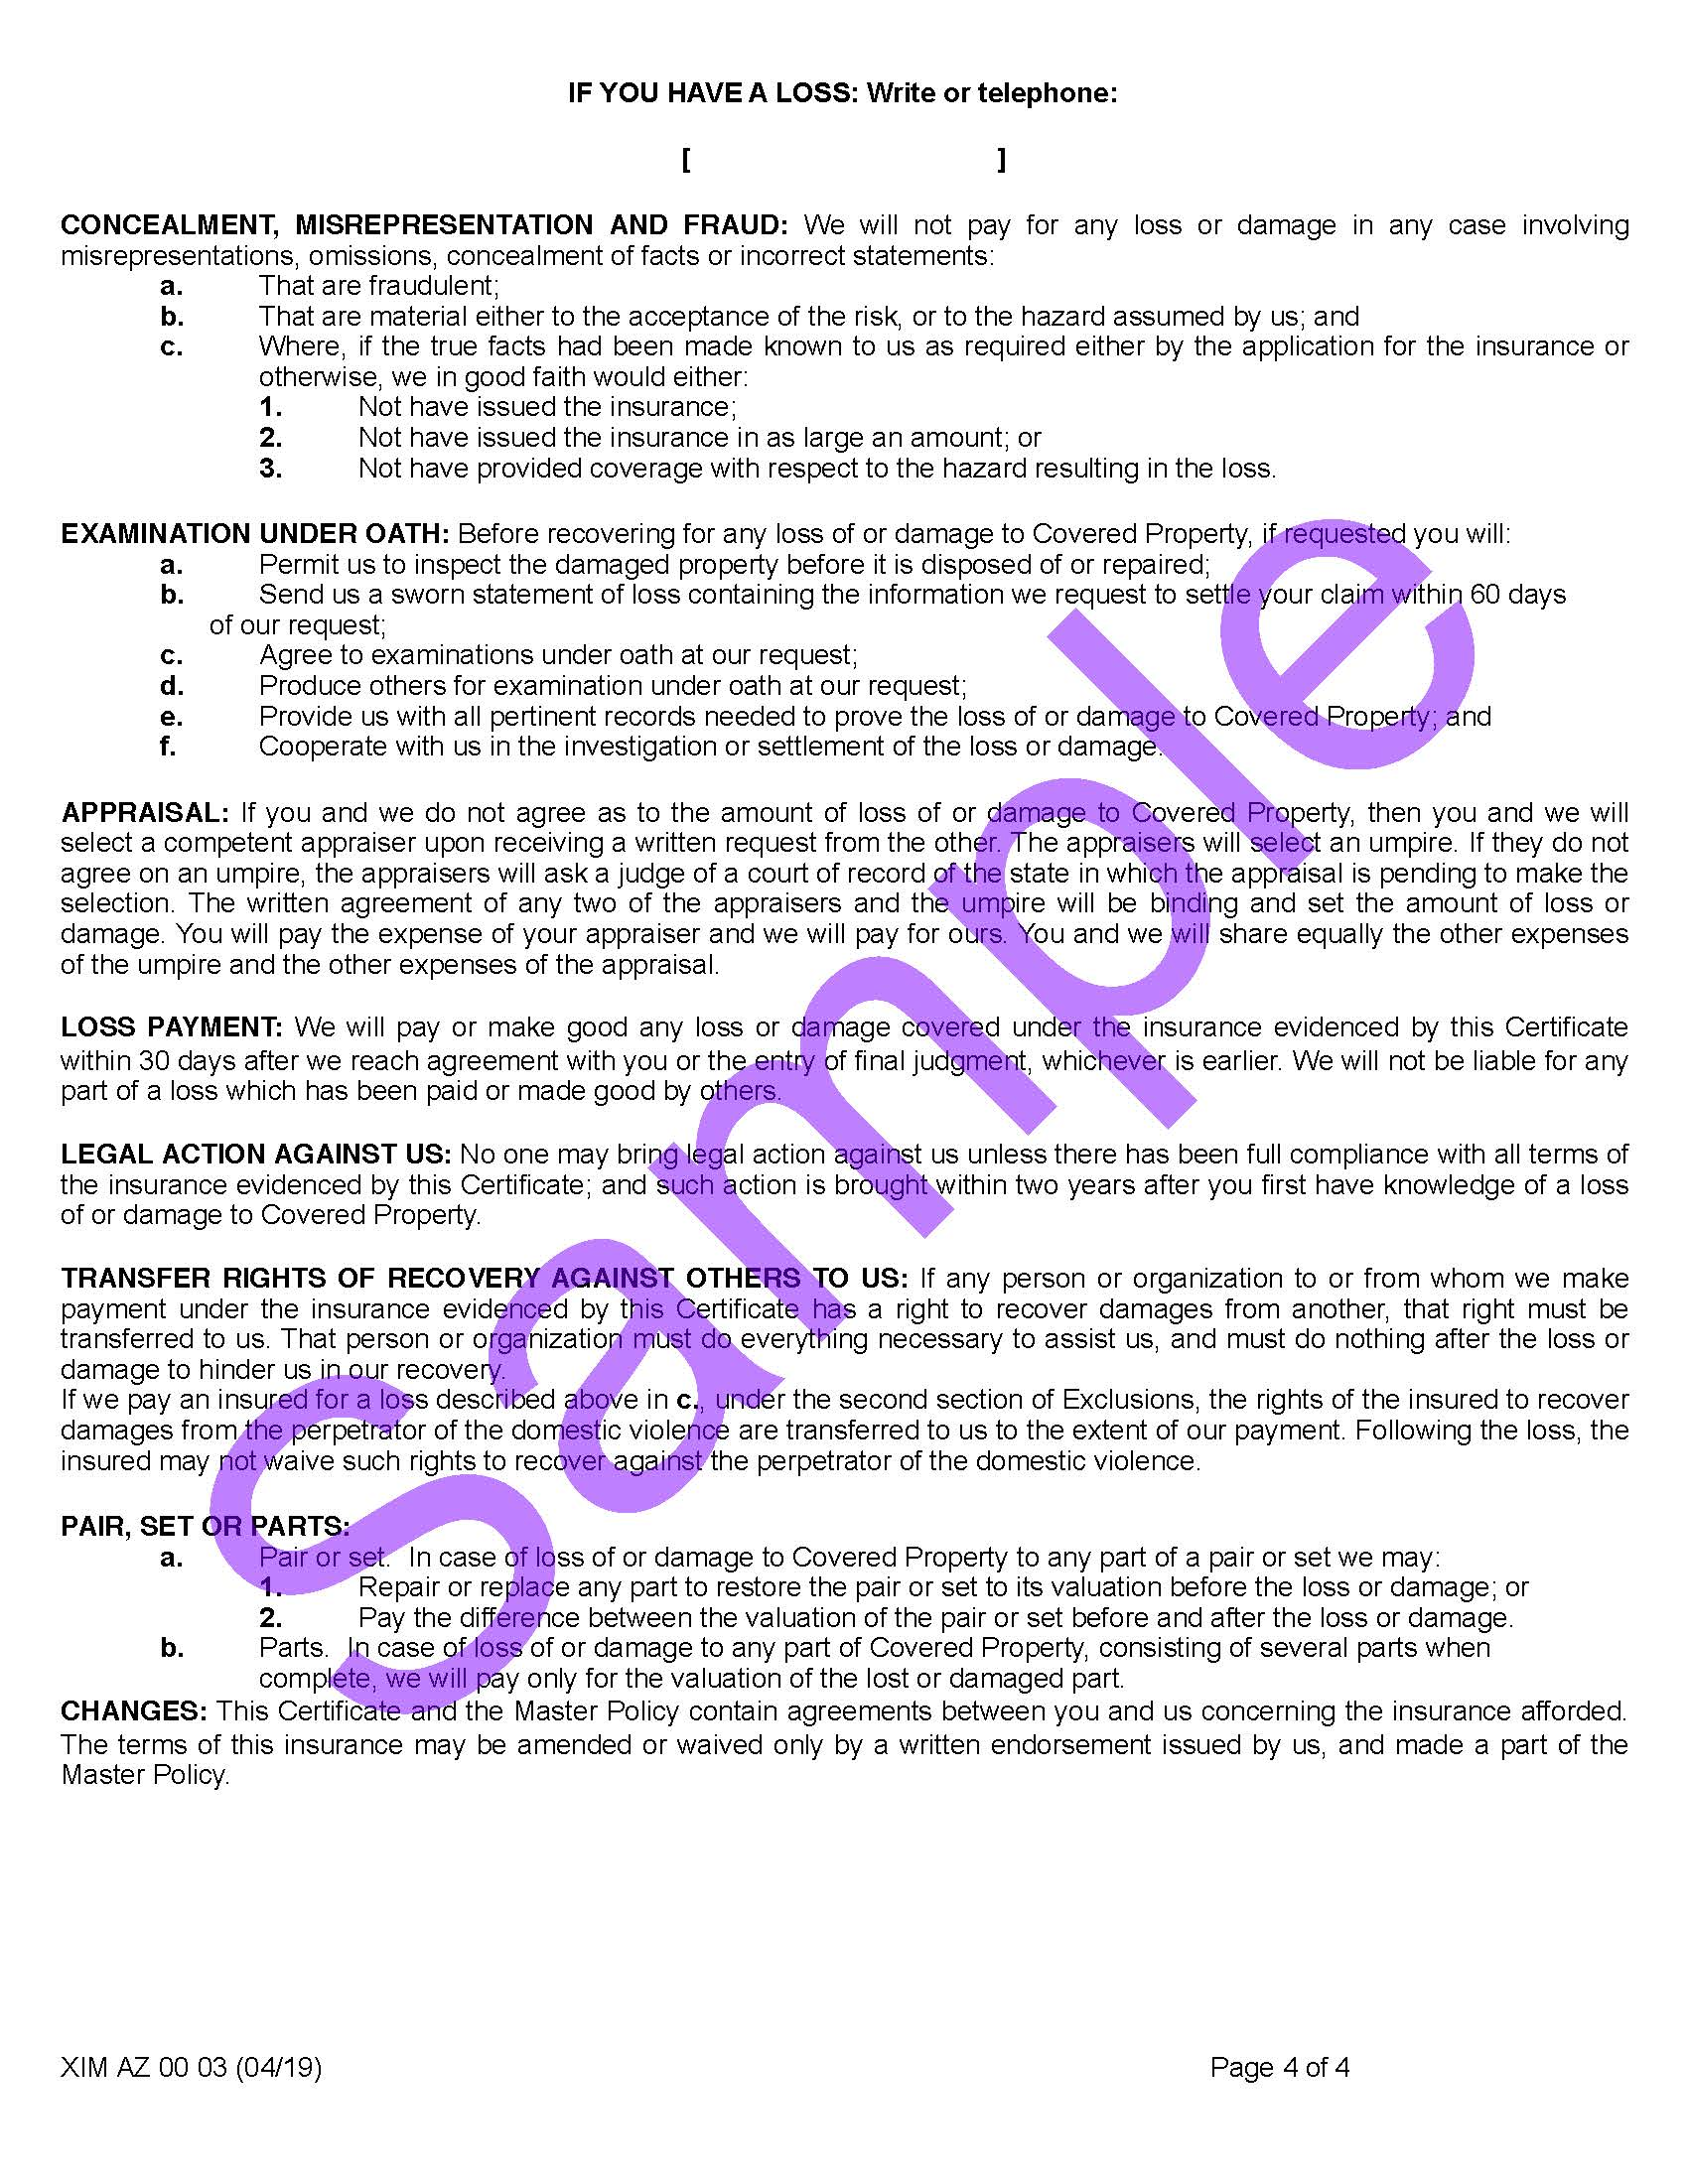 XIM AZ 00 03 04 19 Arizona Certificate of Insurance_Page_4.jpg